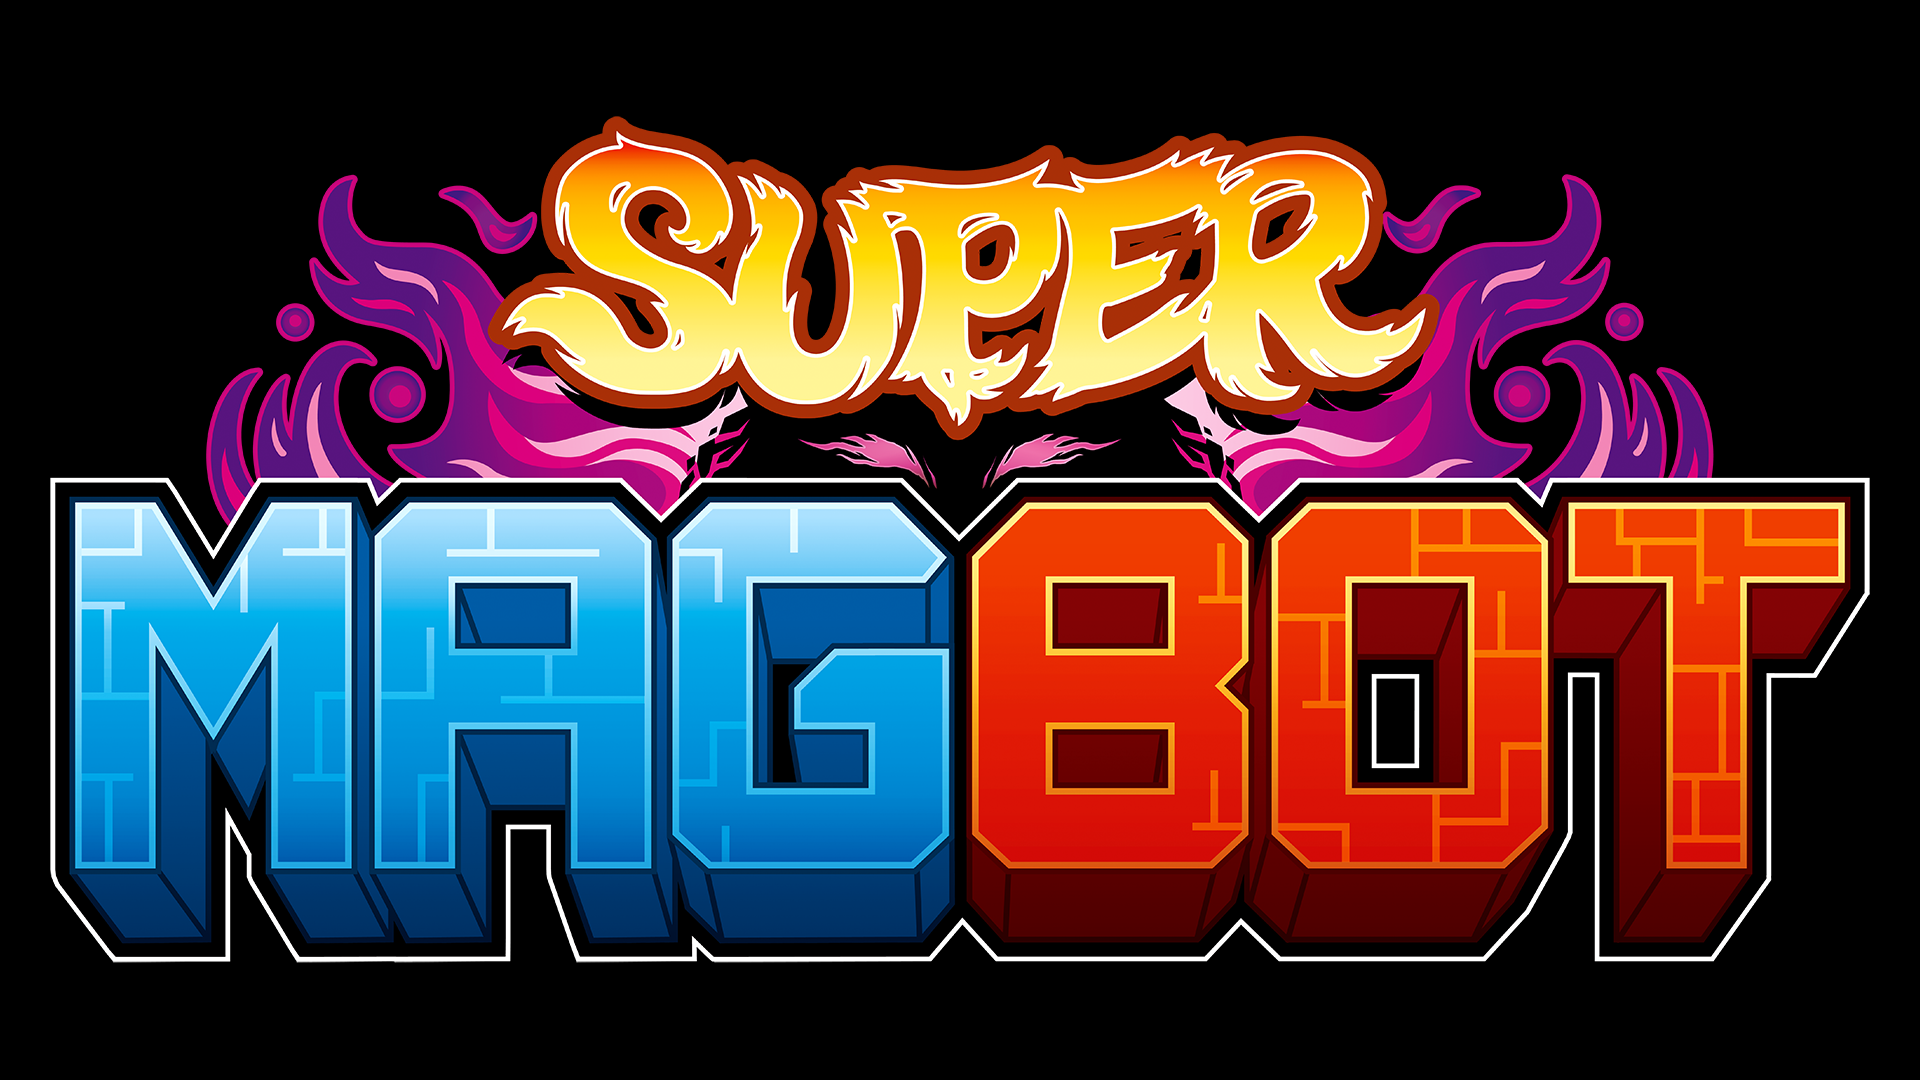 Introducing Super Magbot!